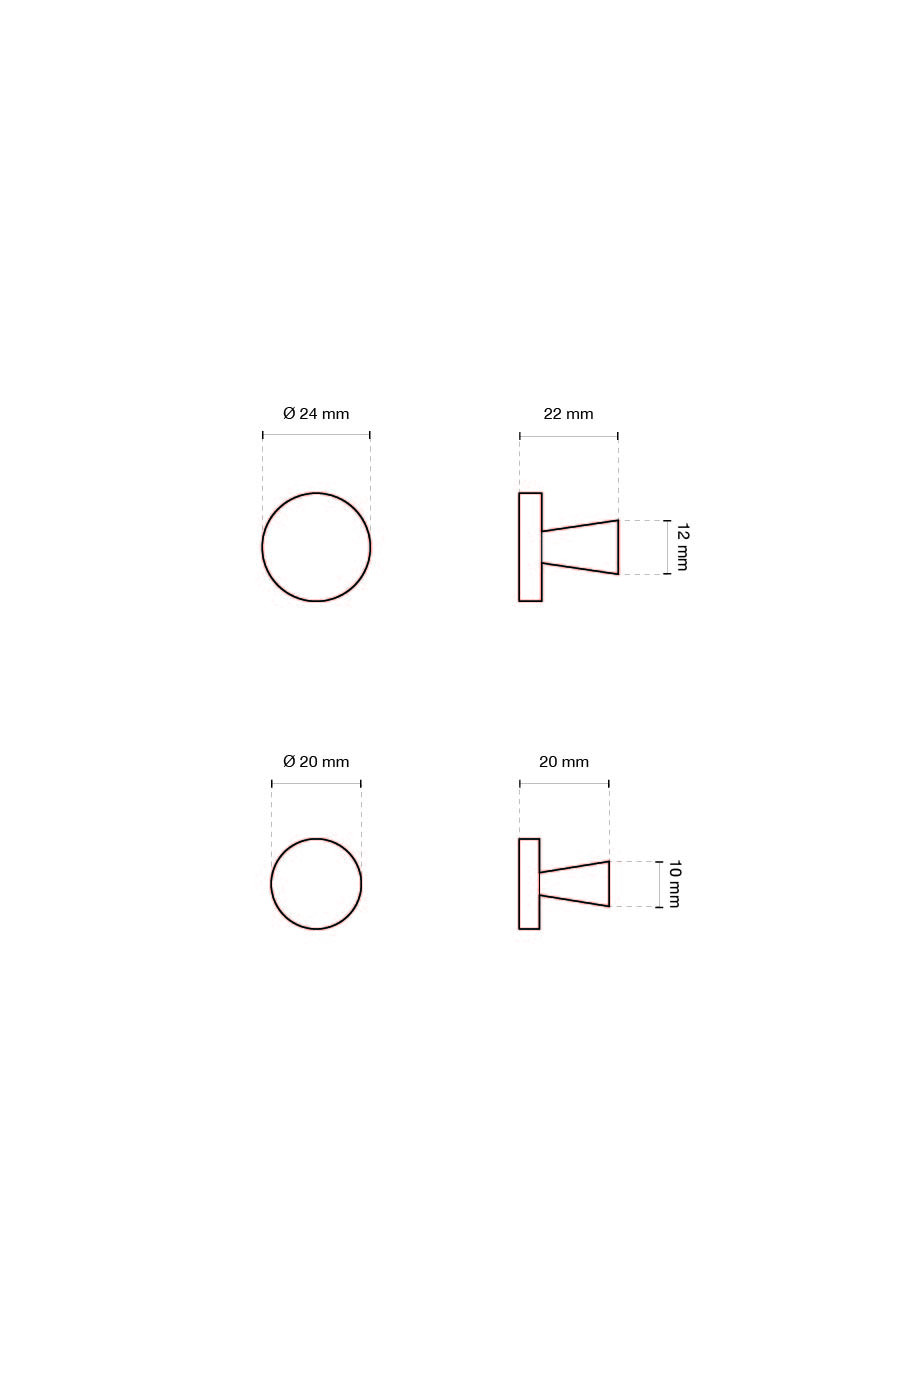 Joinery Pull Dimensions-01.jpg